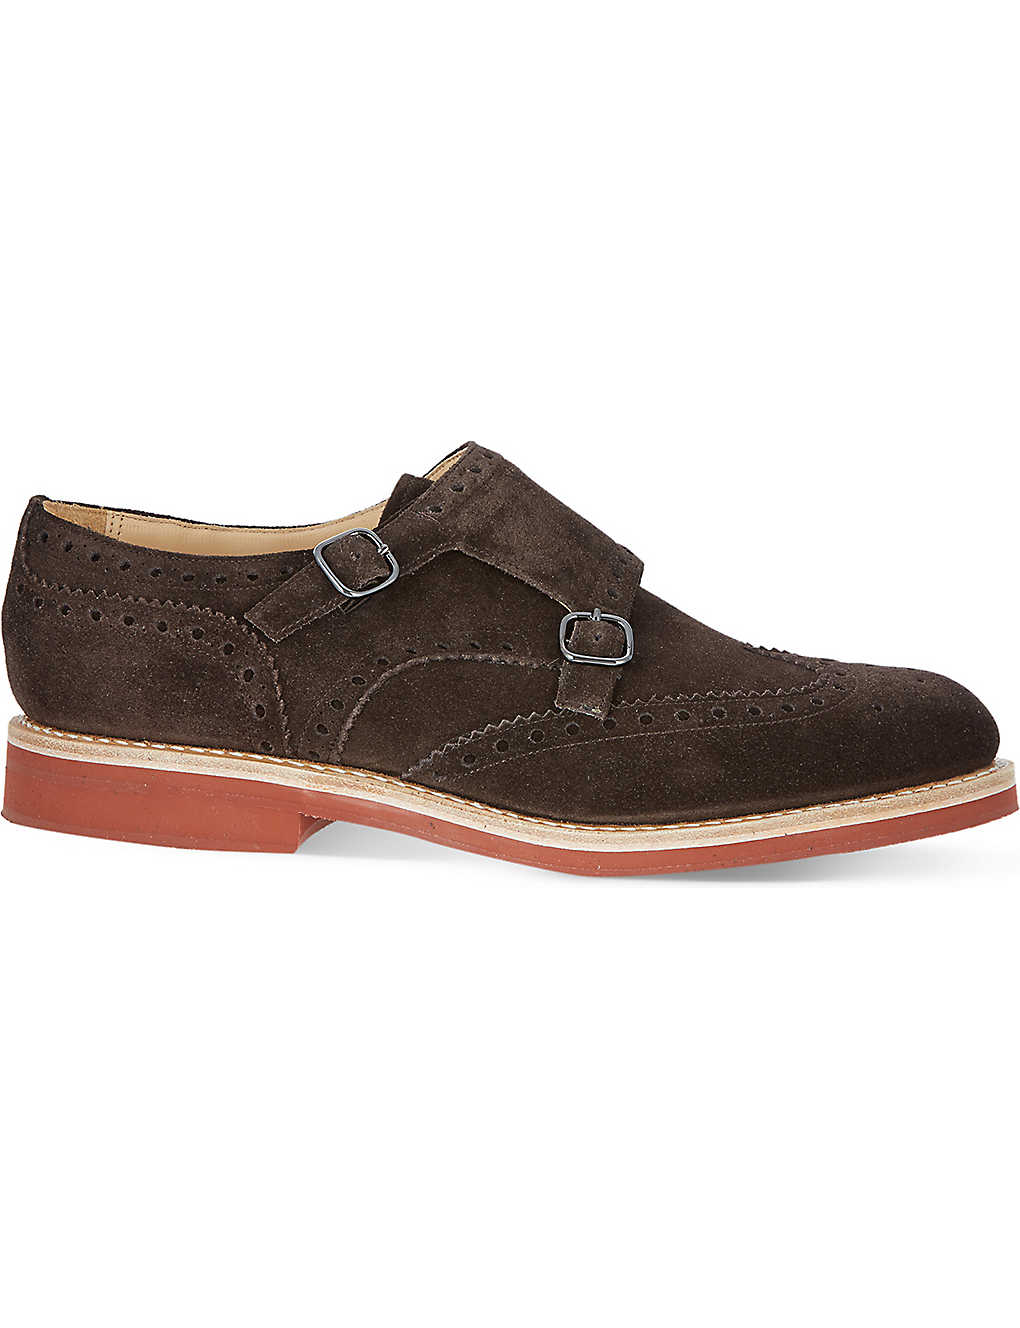 CHURCH - Kelby suede double monk shoes  70b69426061